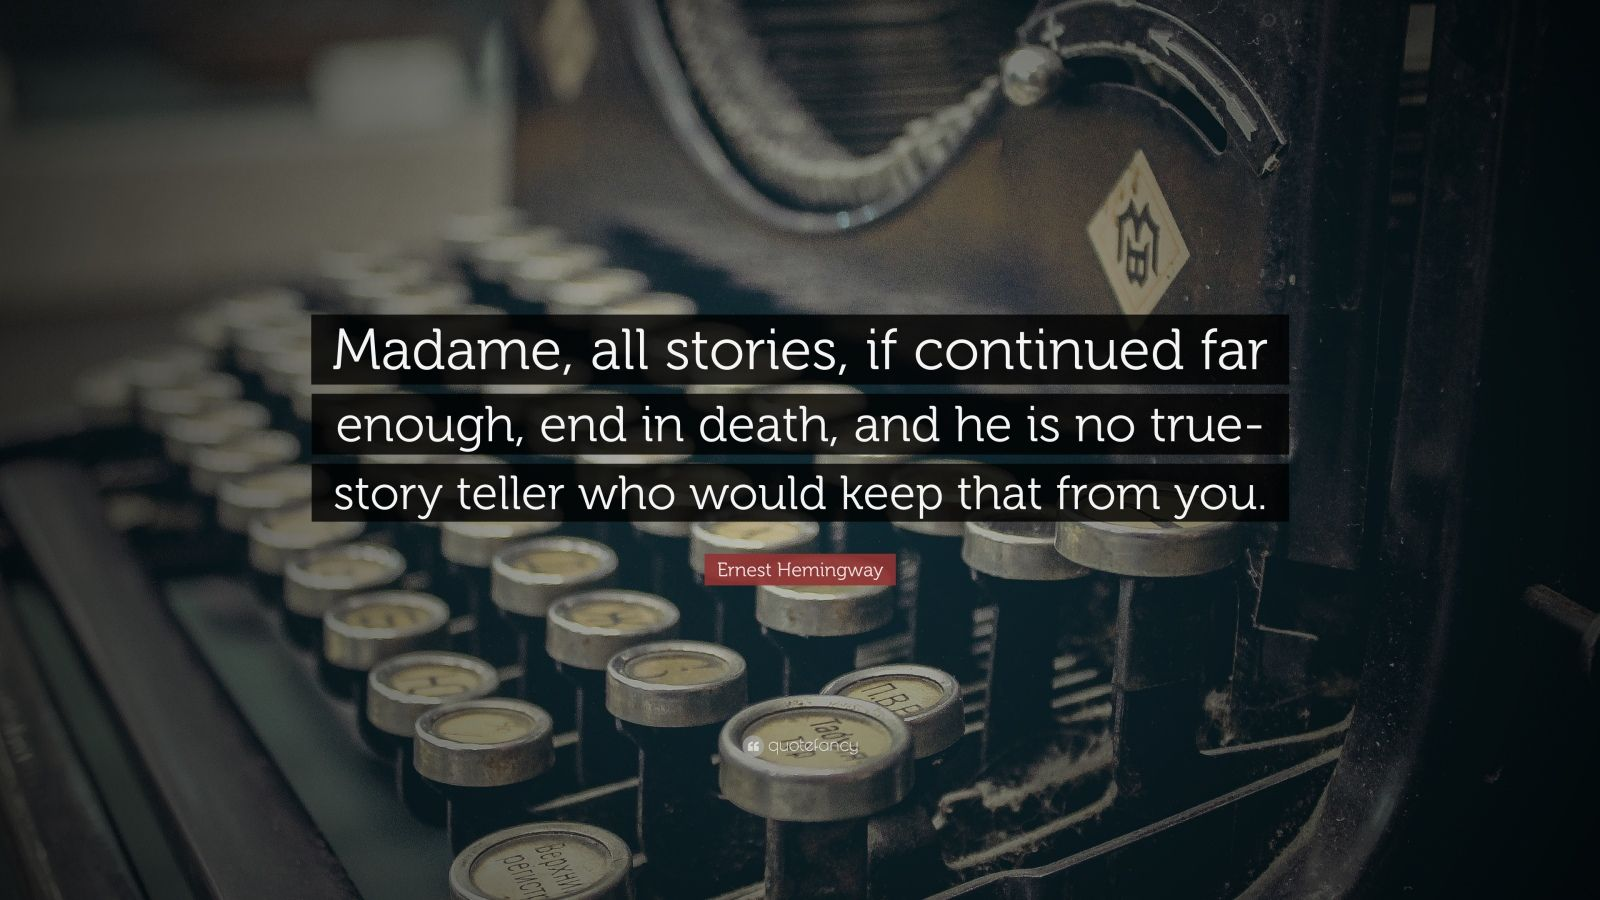 """Ernest Hemingway Quote: """"Madame, all stories, if continued far enough, end in death, and he is no true-story teller who would keep that from you."""""""